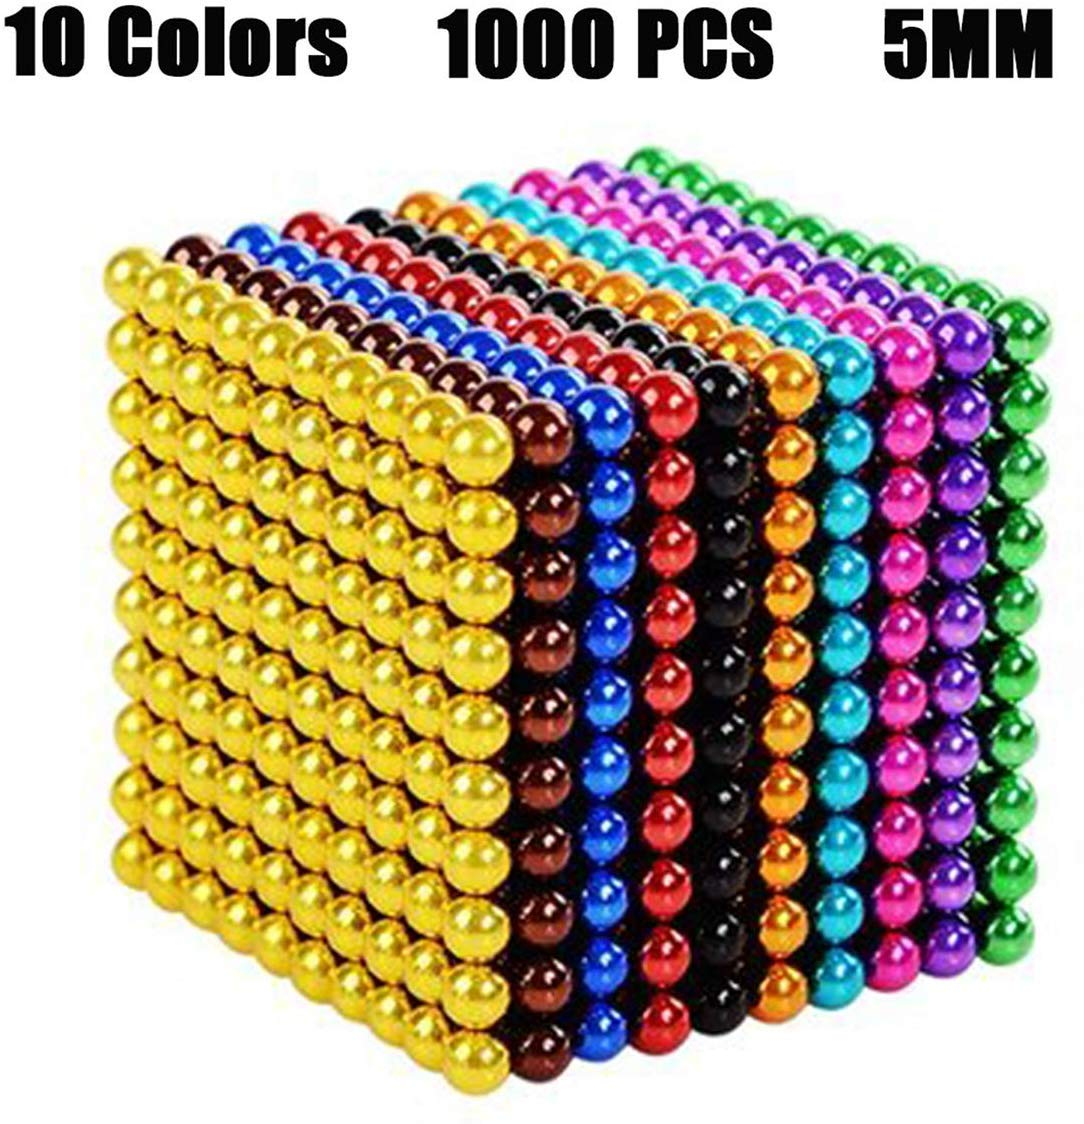 BOLLAER Buck Ball, 10 Colors 1000 Pcs of 5MM Magnets DIY Toys Magnetic Fidget Blocks Building Blocks for Development Learning and Stress Relief Magnet Office Desk Toys for Adults by BOLLAER